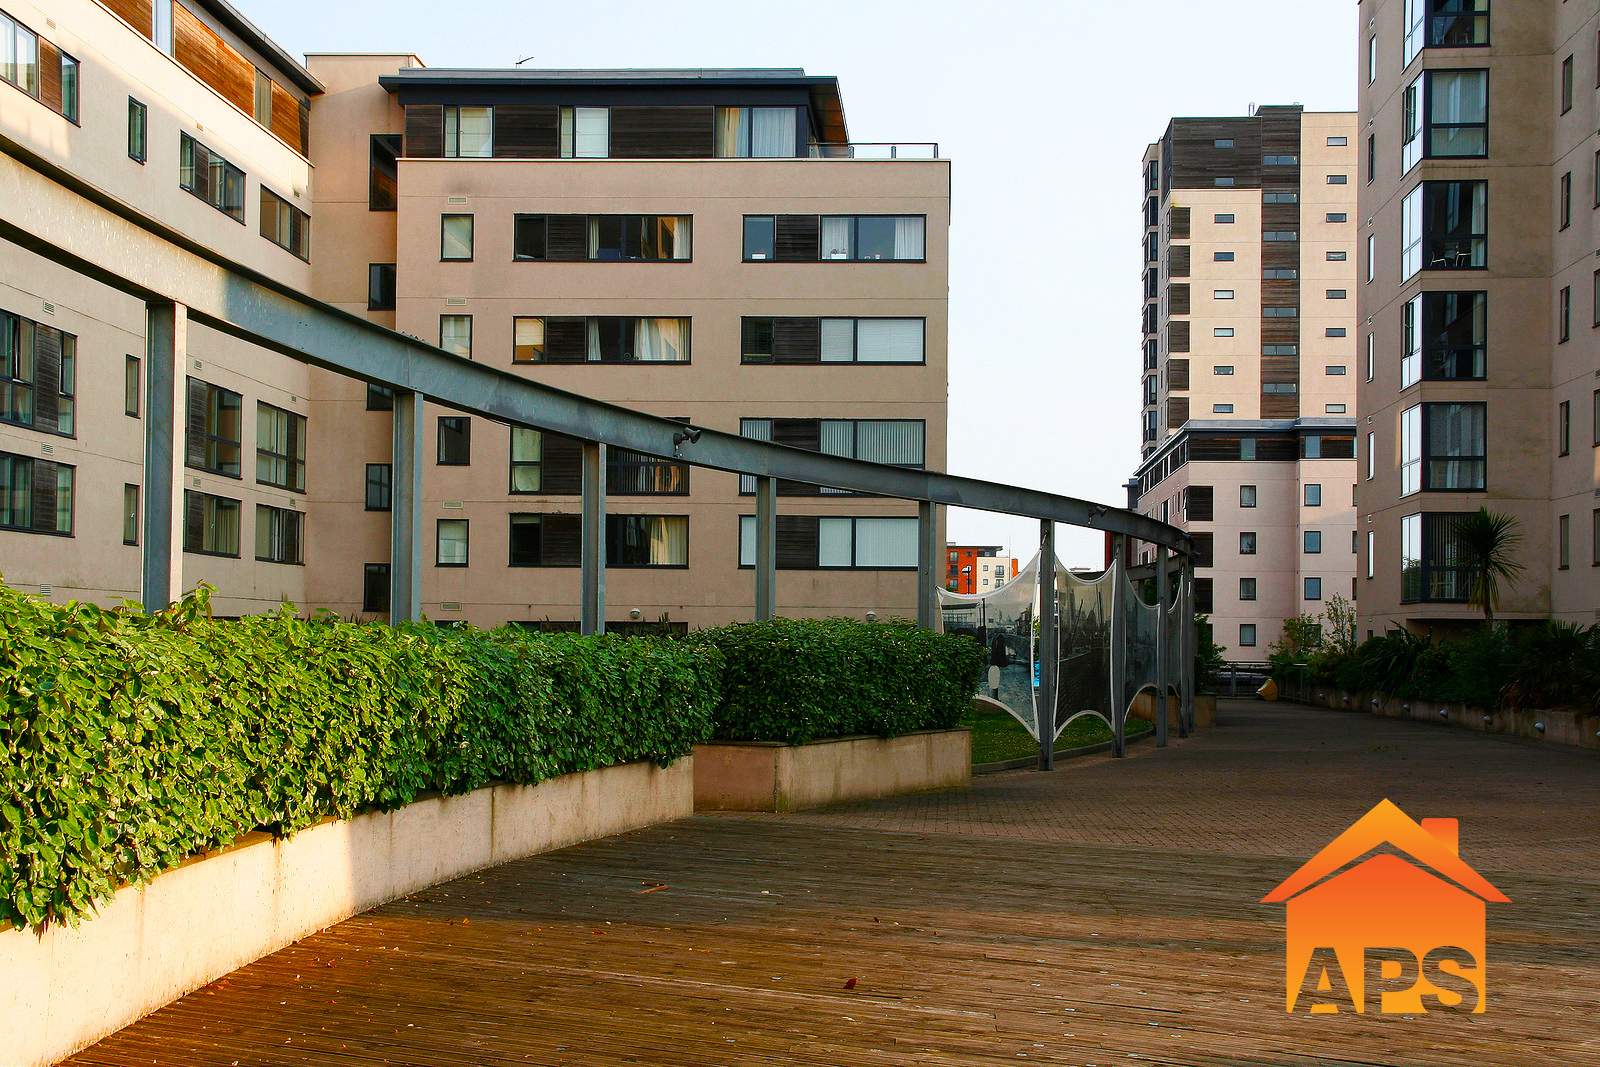 Cardiff Private Rents hit £19.18 per sq. foot